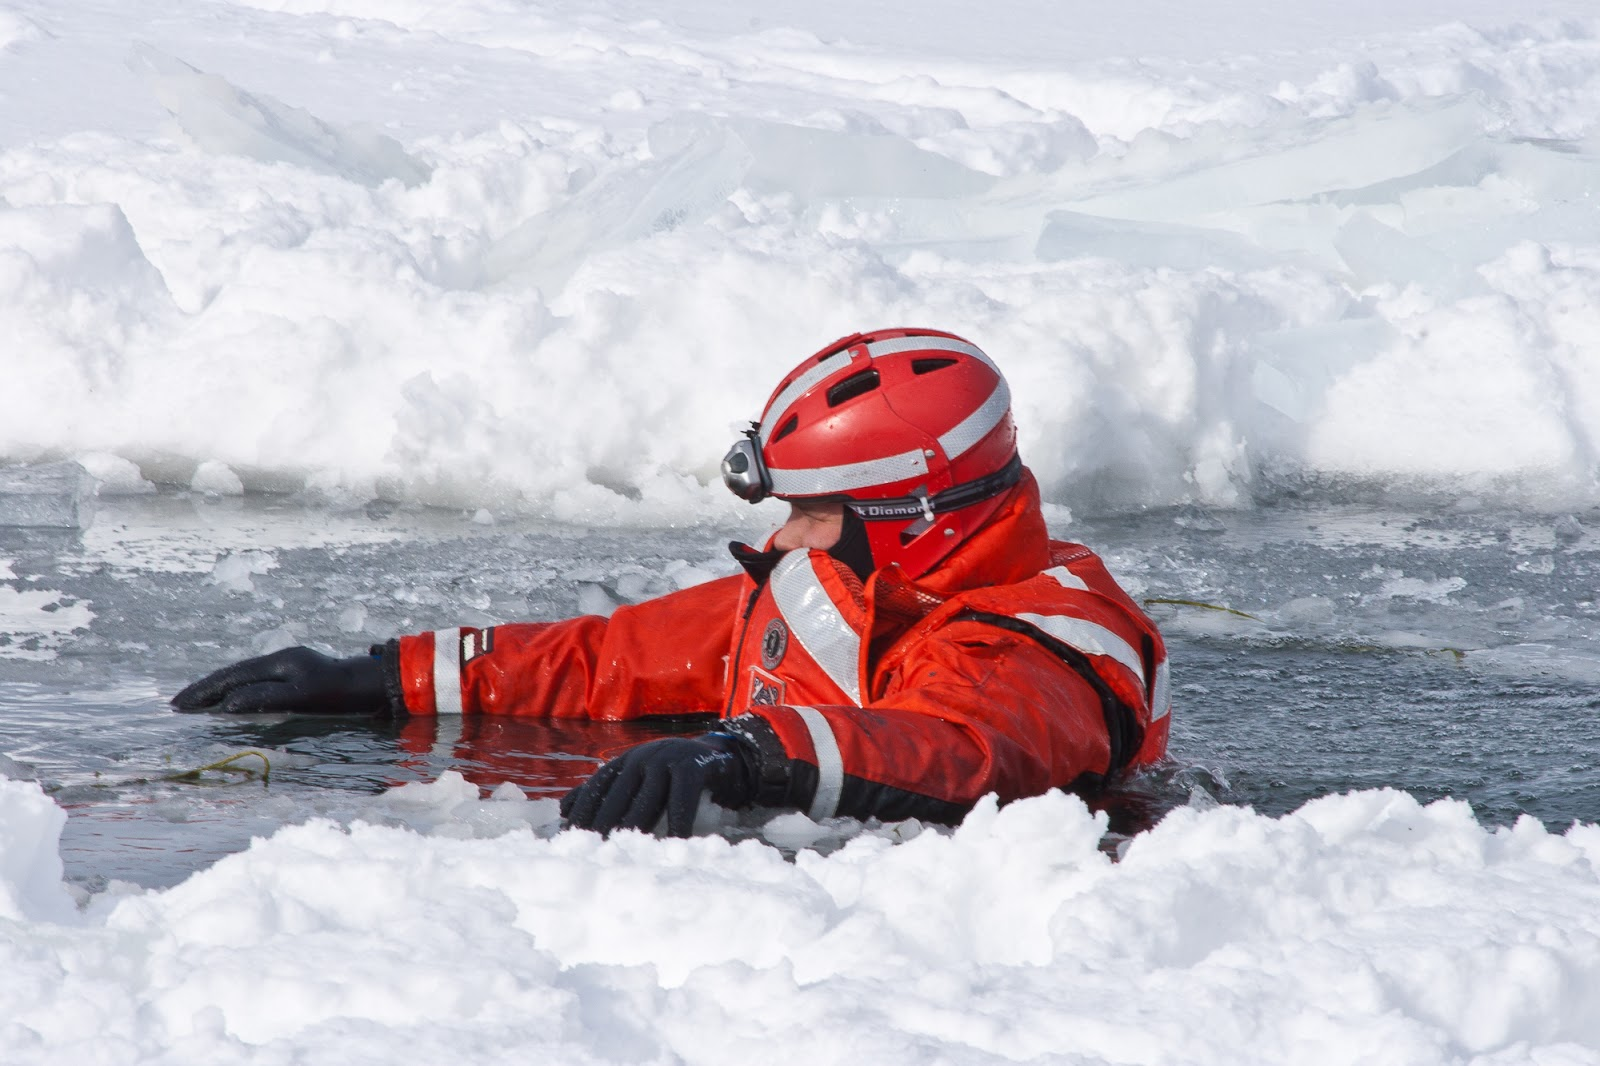 us coast guard ice rescue team member